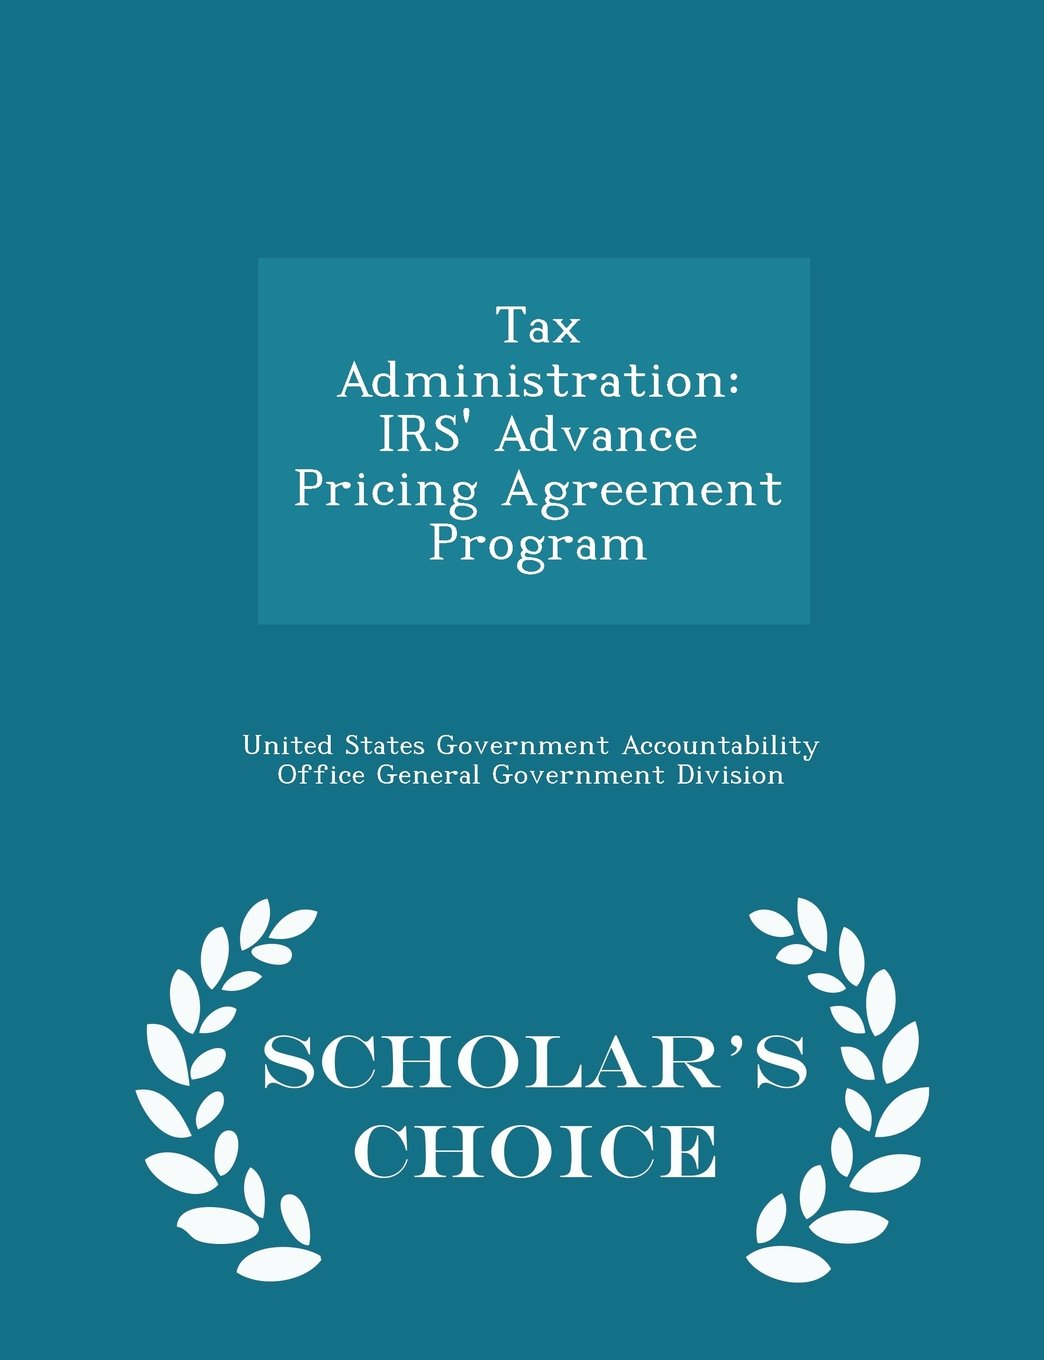 Tax Administration Irs Advance Pricing Agreement Program